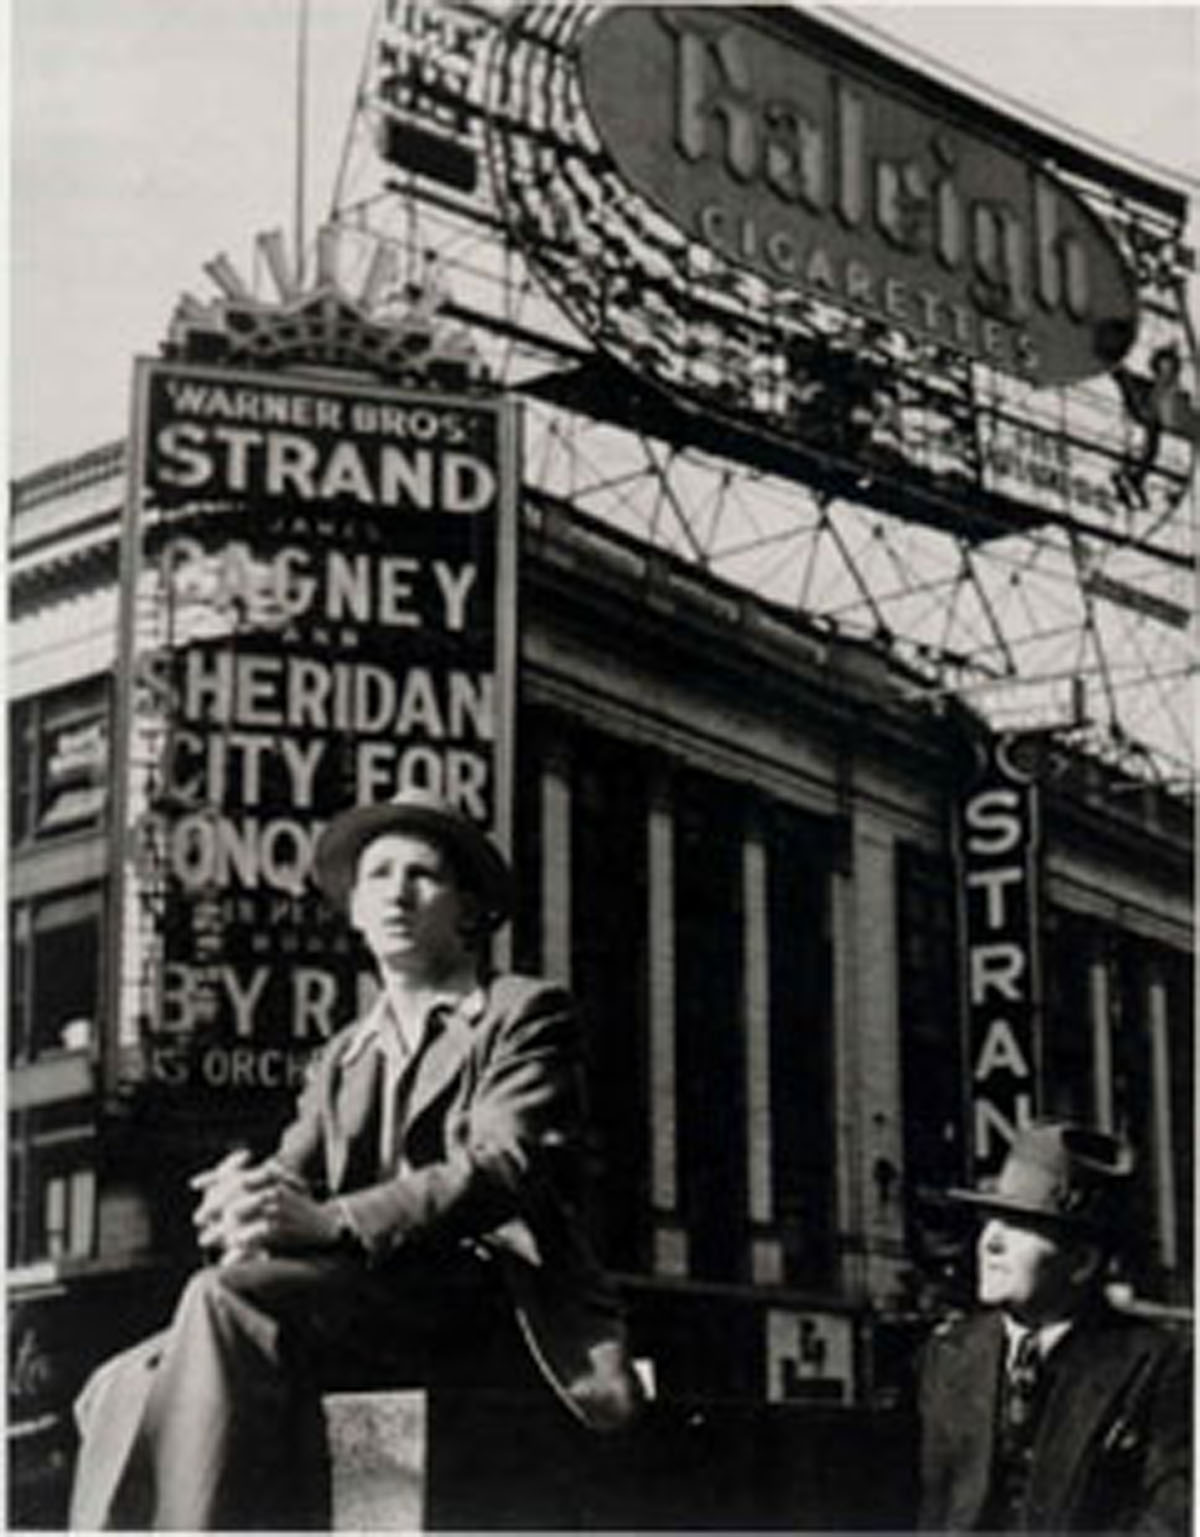 Sitting in Front of the Strand, Times Square (1940) photograph by Lou Stouman Courtesy Barry Singer Gallery, Petaluma, California